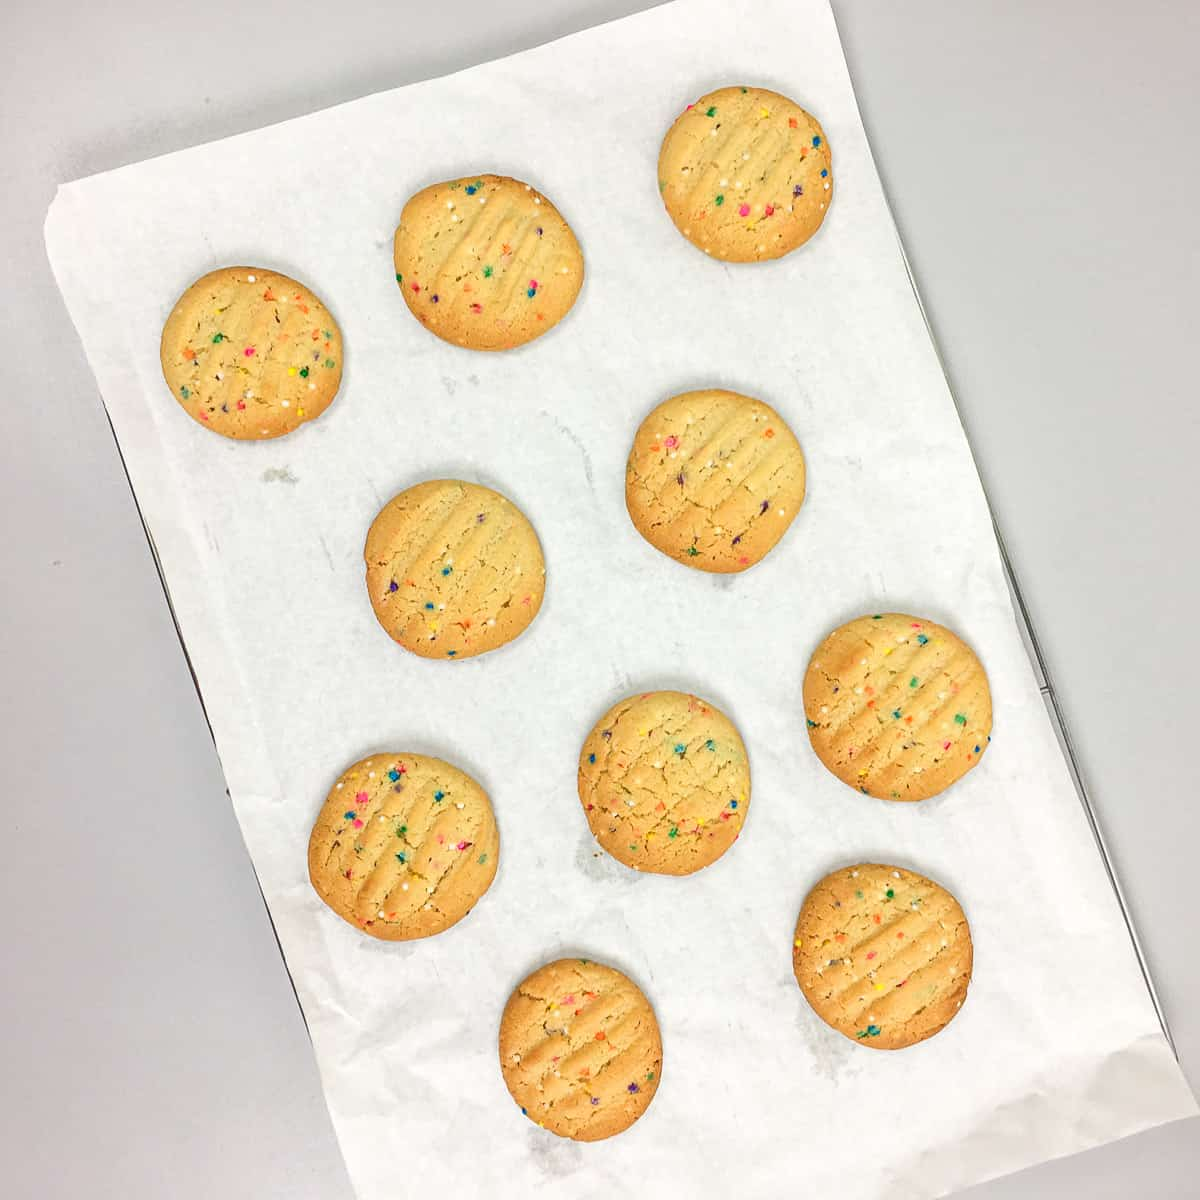 Cookies on a parchment paper